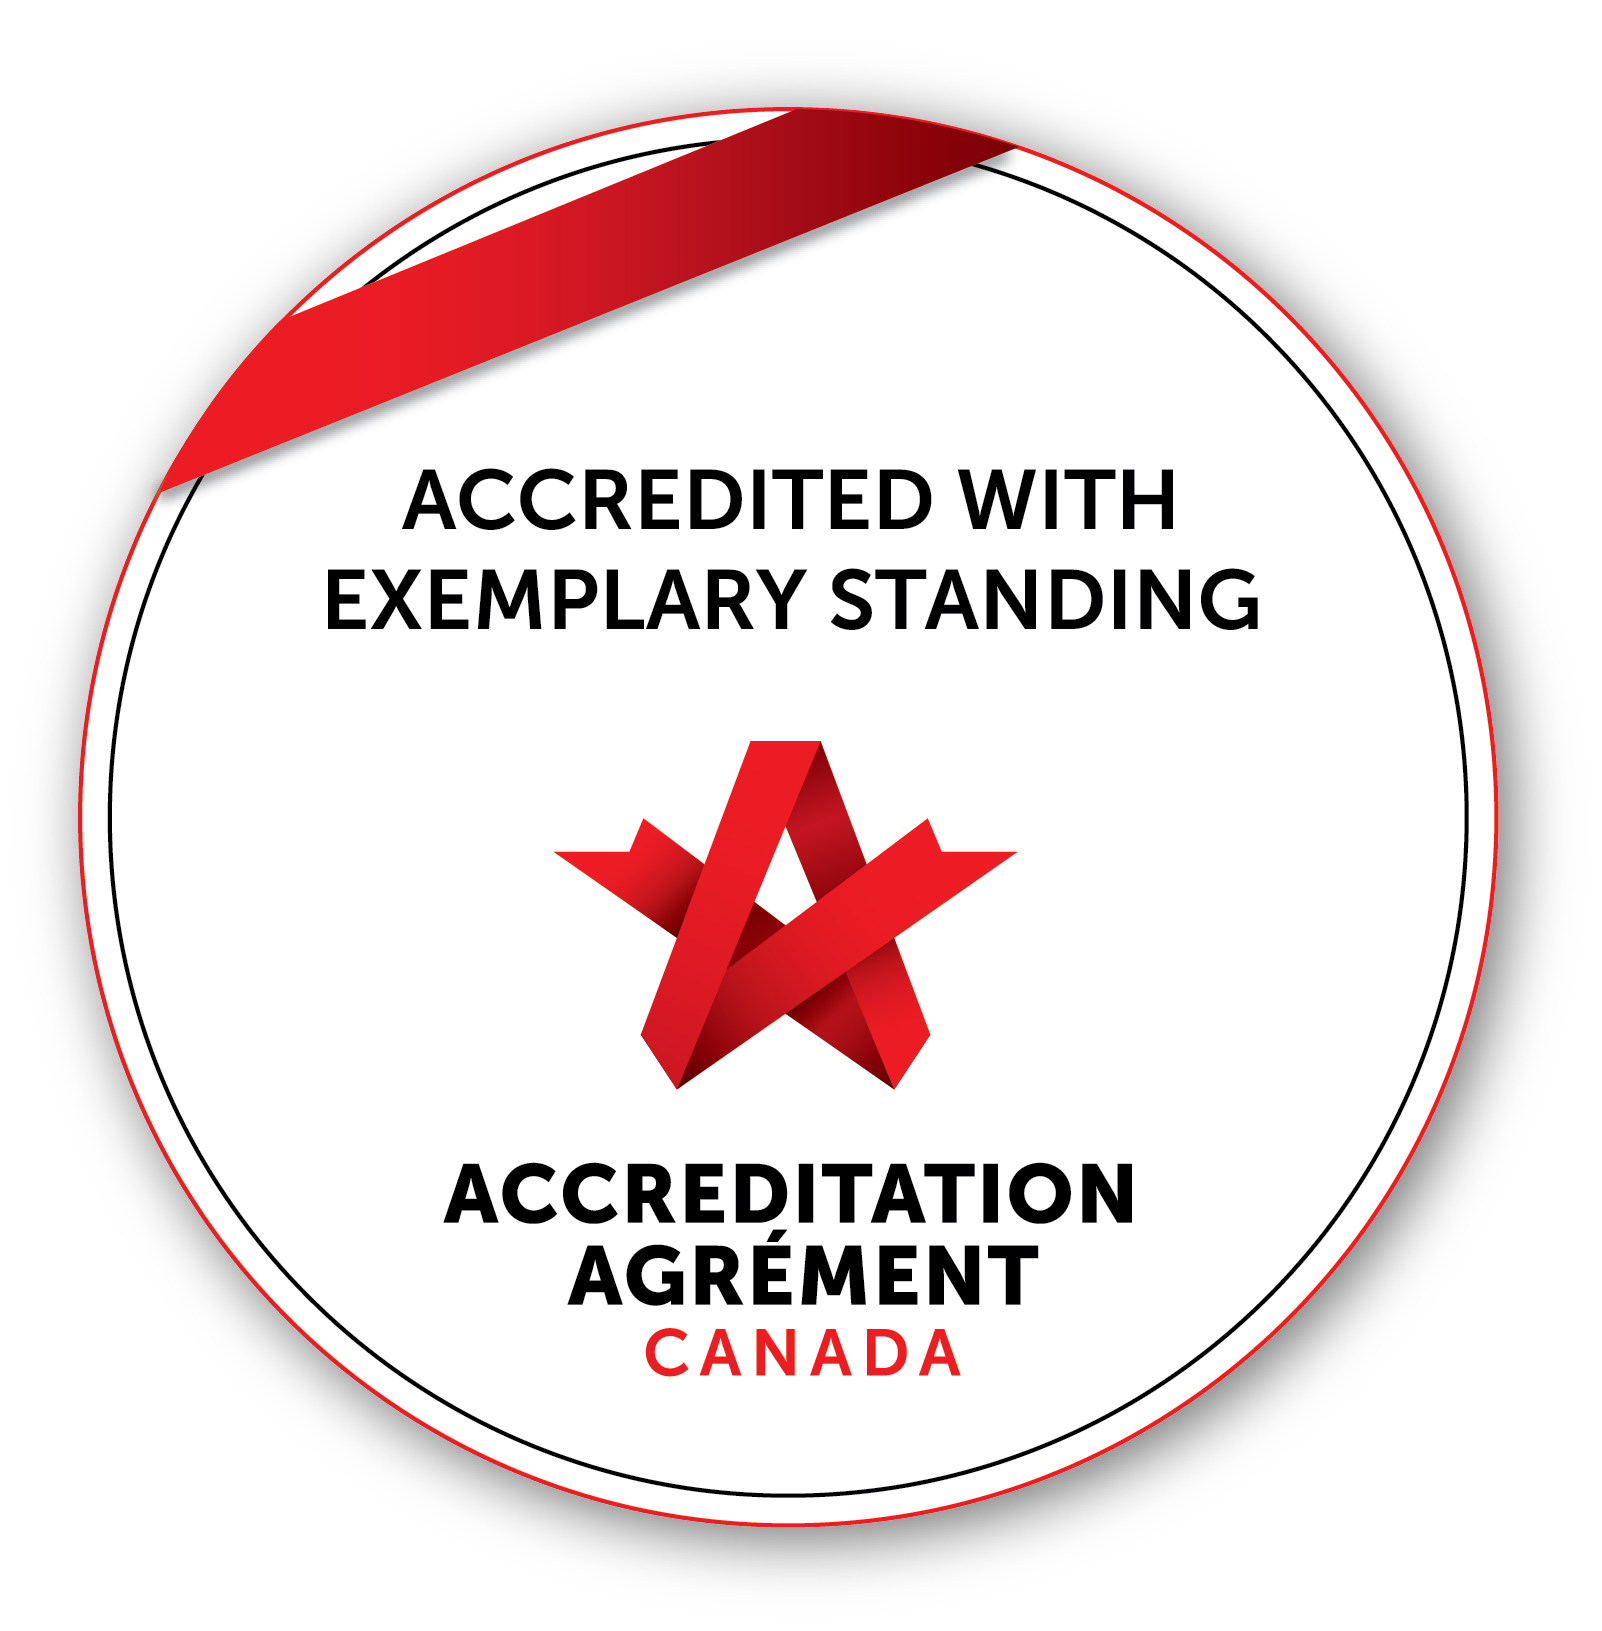 Acreditation Canada Seal - Exemplary Status